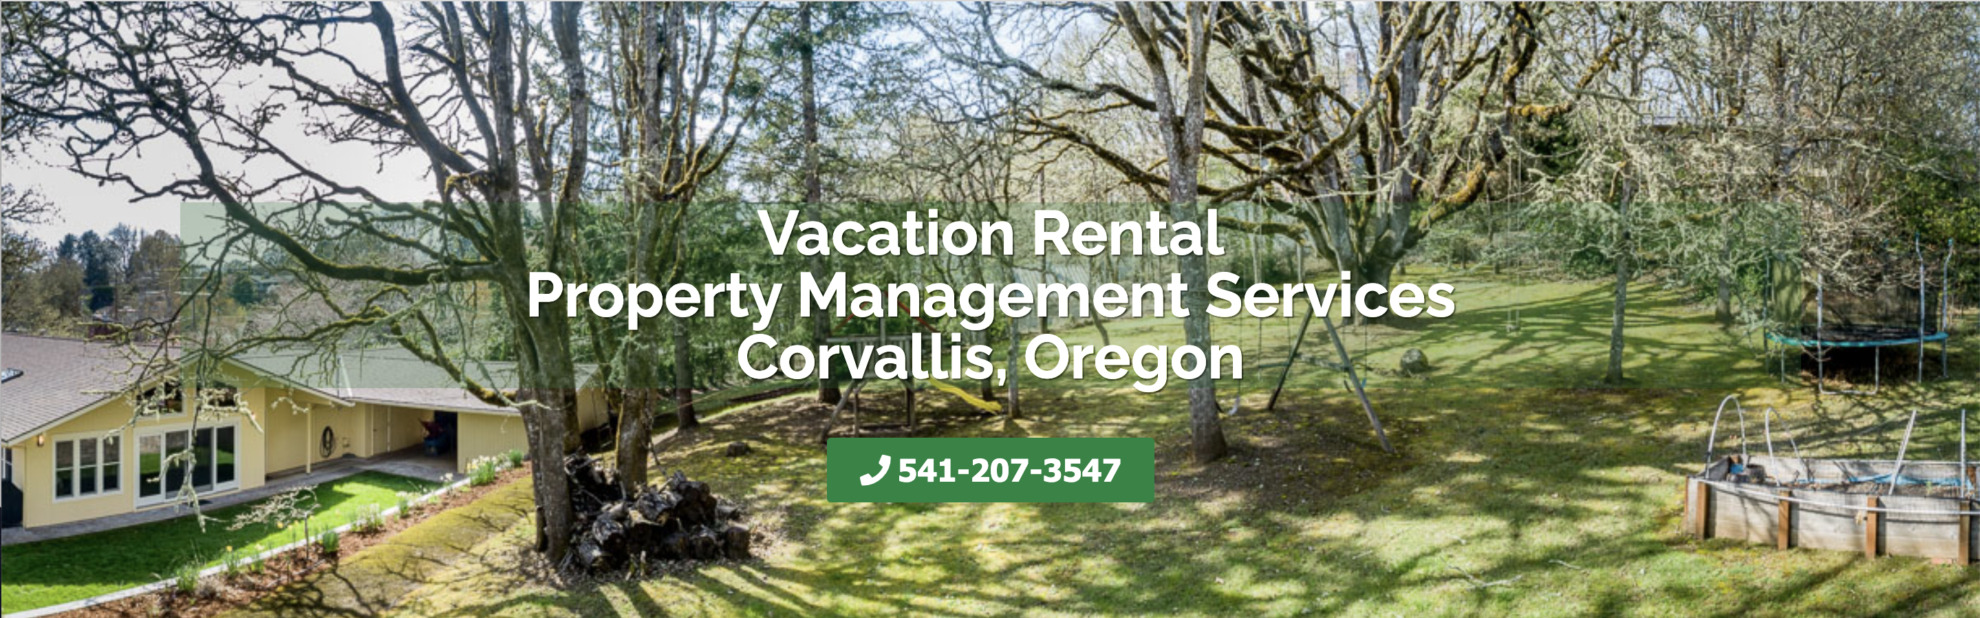 Vacation Rental Property Management Corvallis with phone